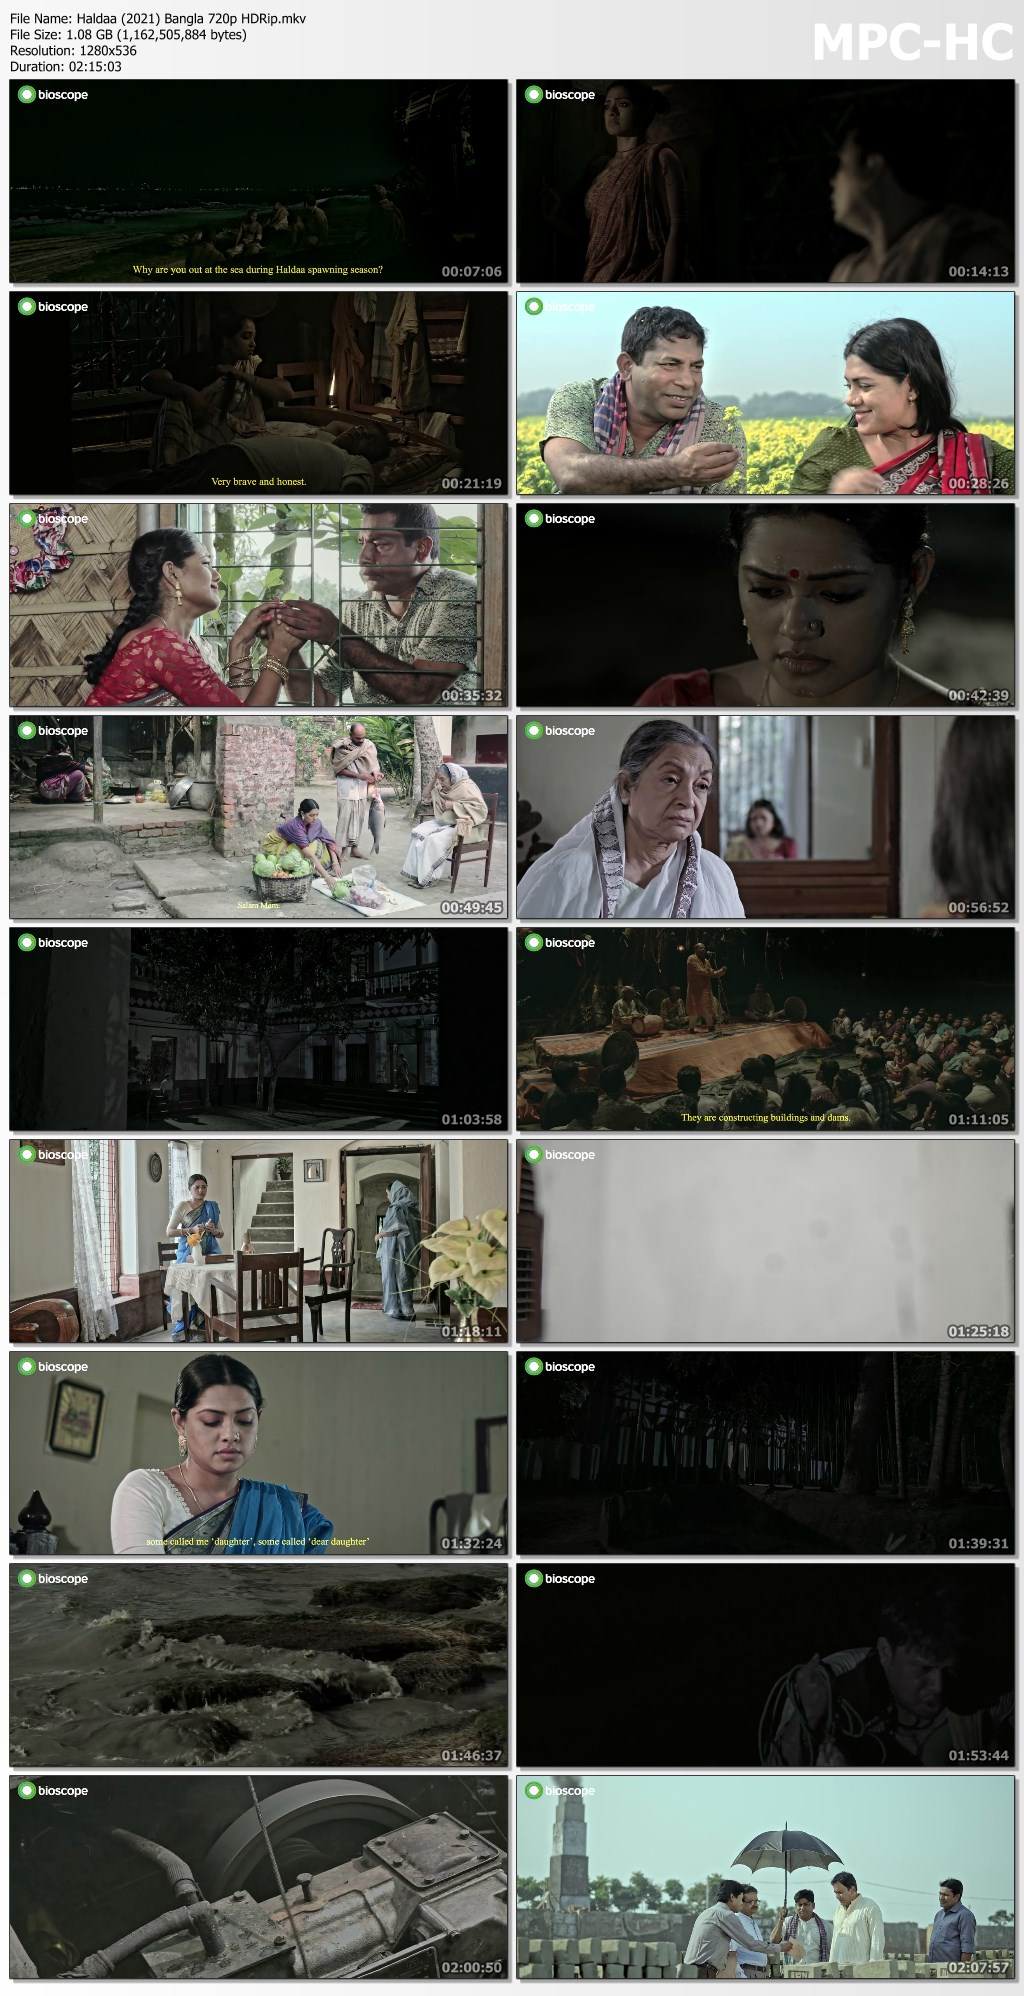 Haldaa (2021) Bangla 720p HDRip.mkv thumbs